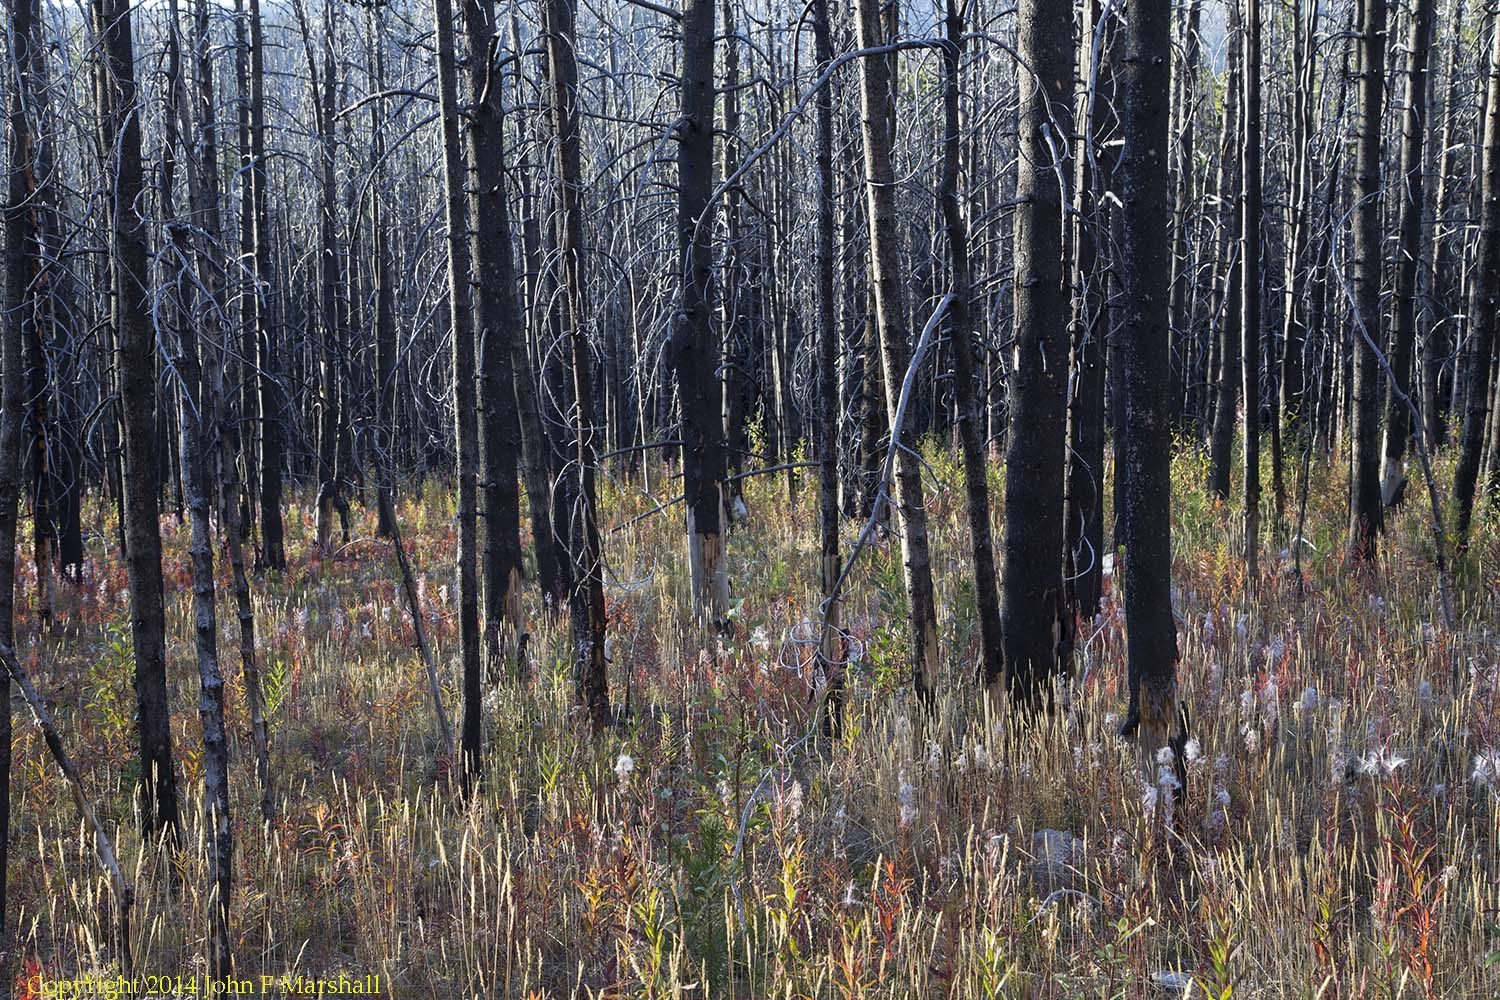 Eight years after the Tripod Fire of 2006, the ground is well covered by sun-loving plants including fireweed, grasses, and willow. Lodgepole pine seedlings are well established. Wildlife species that browse willow, feed on grouse berries, or eat seeds will find more to eat here in the summer than in the closed canopy forest.